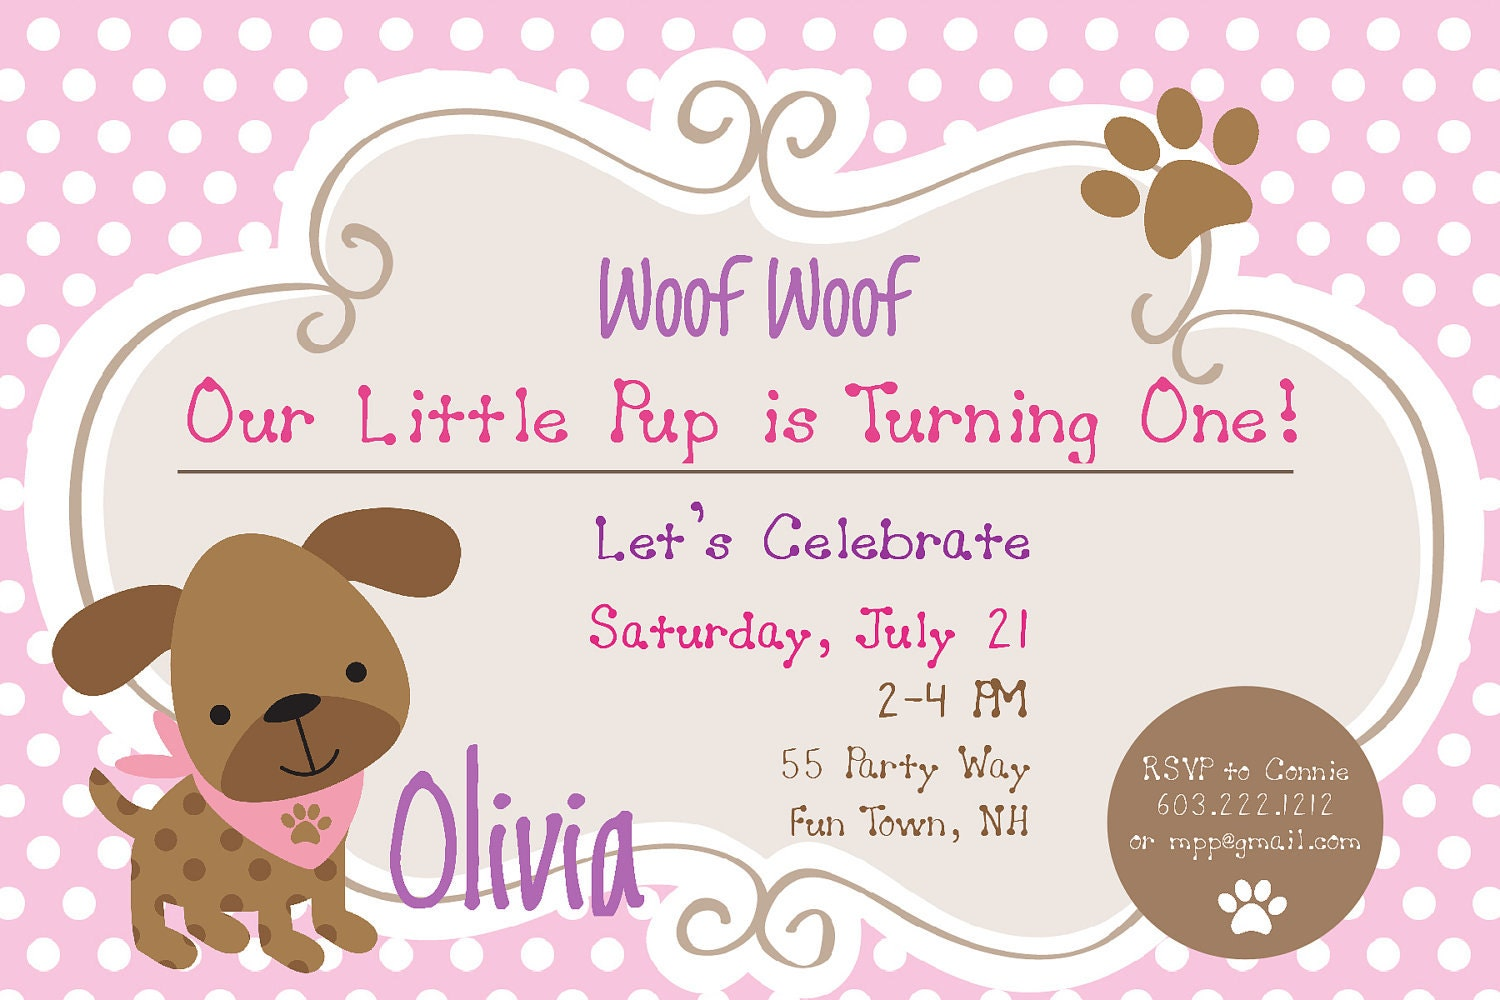 Dog Birthday Party Invitations Free Amazing Invitation Template